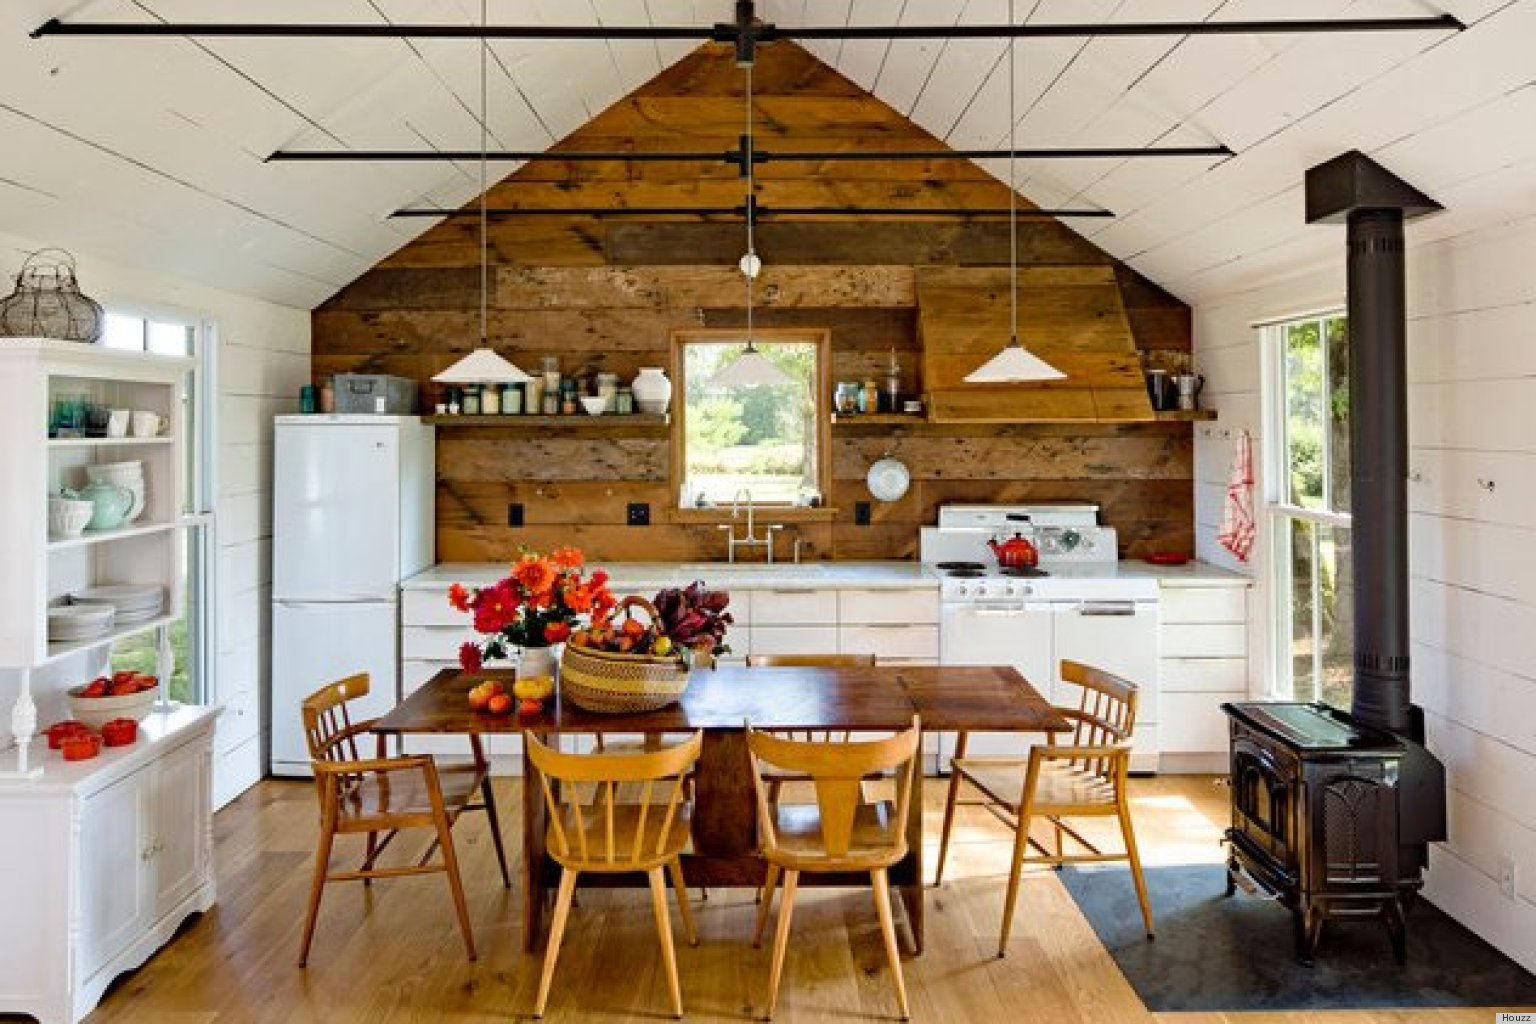 A Small Home For Four Has Us Reconsidering How Much Space We Really ...